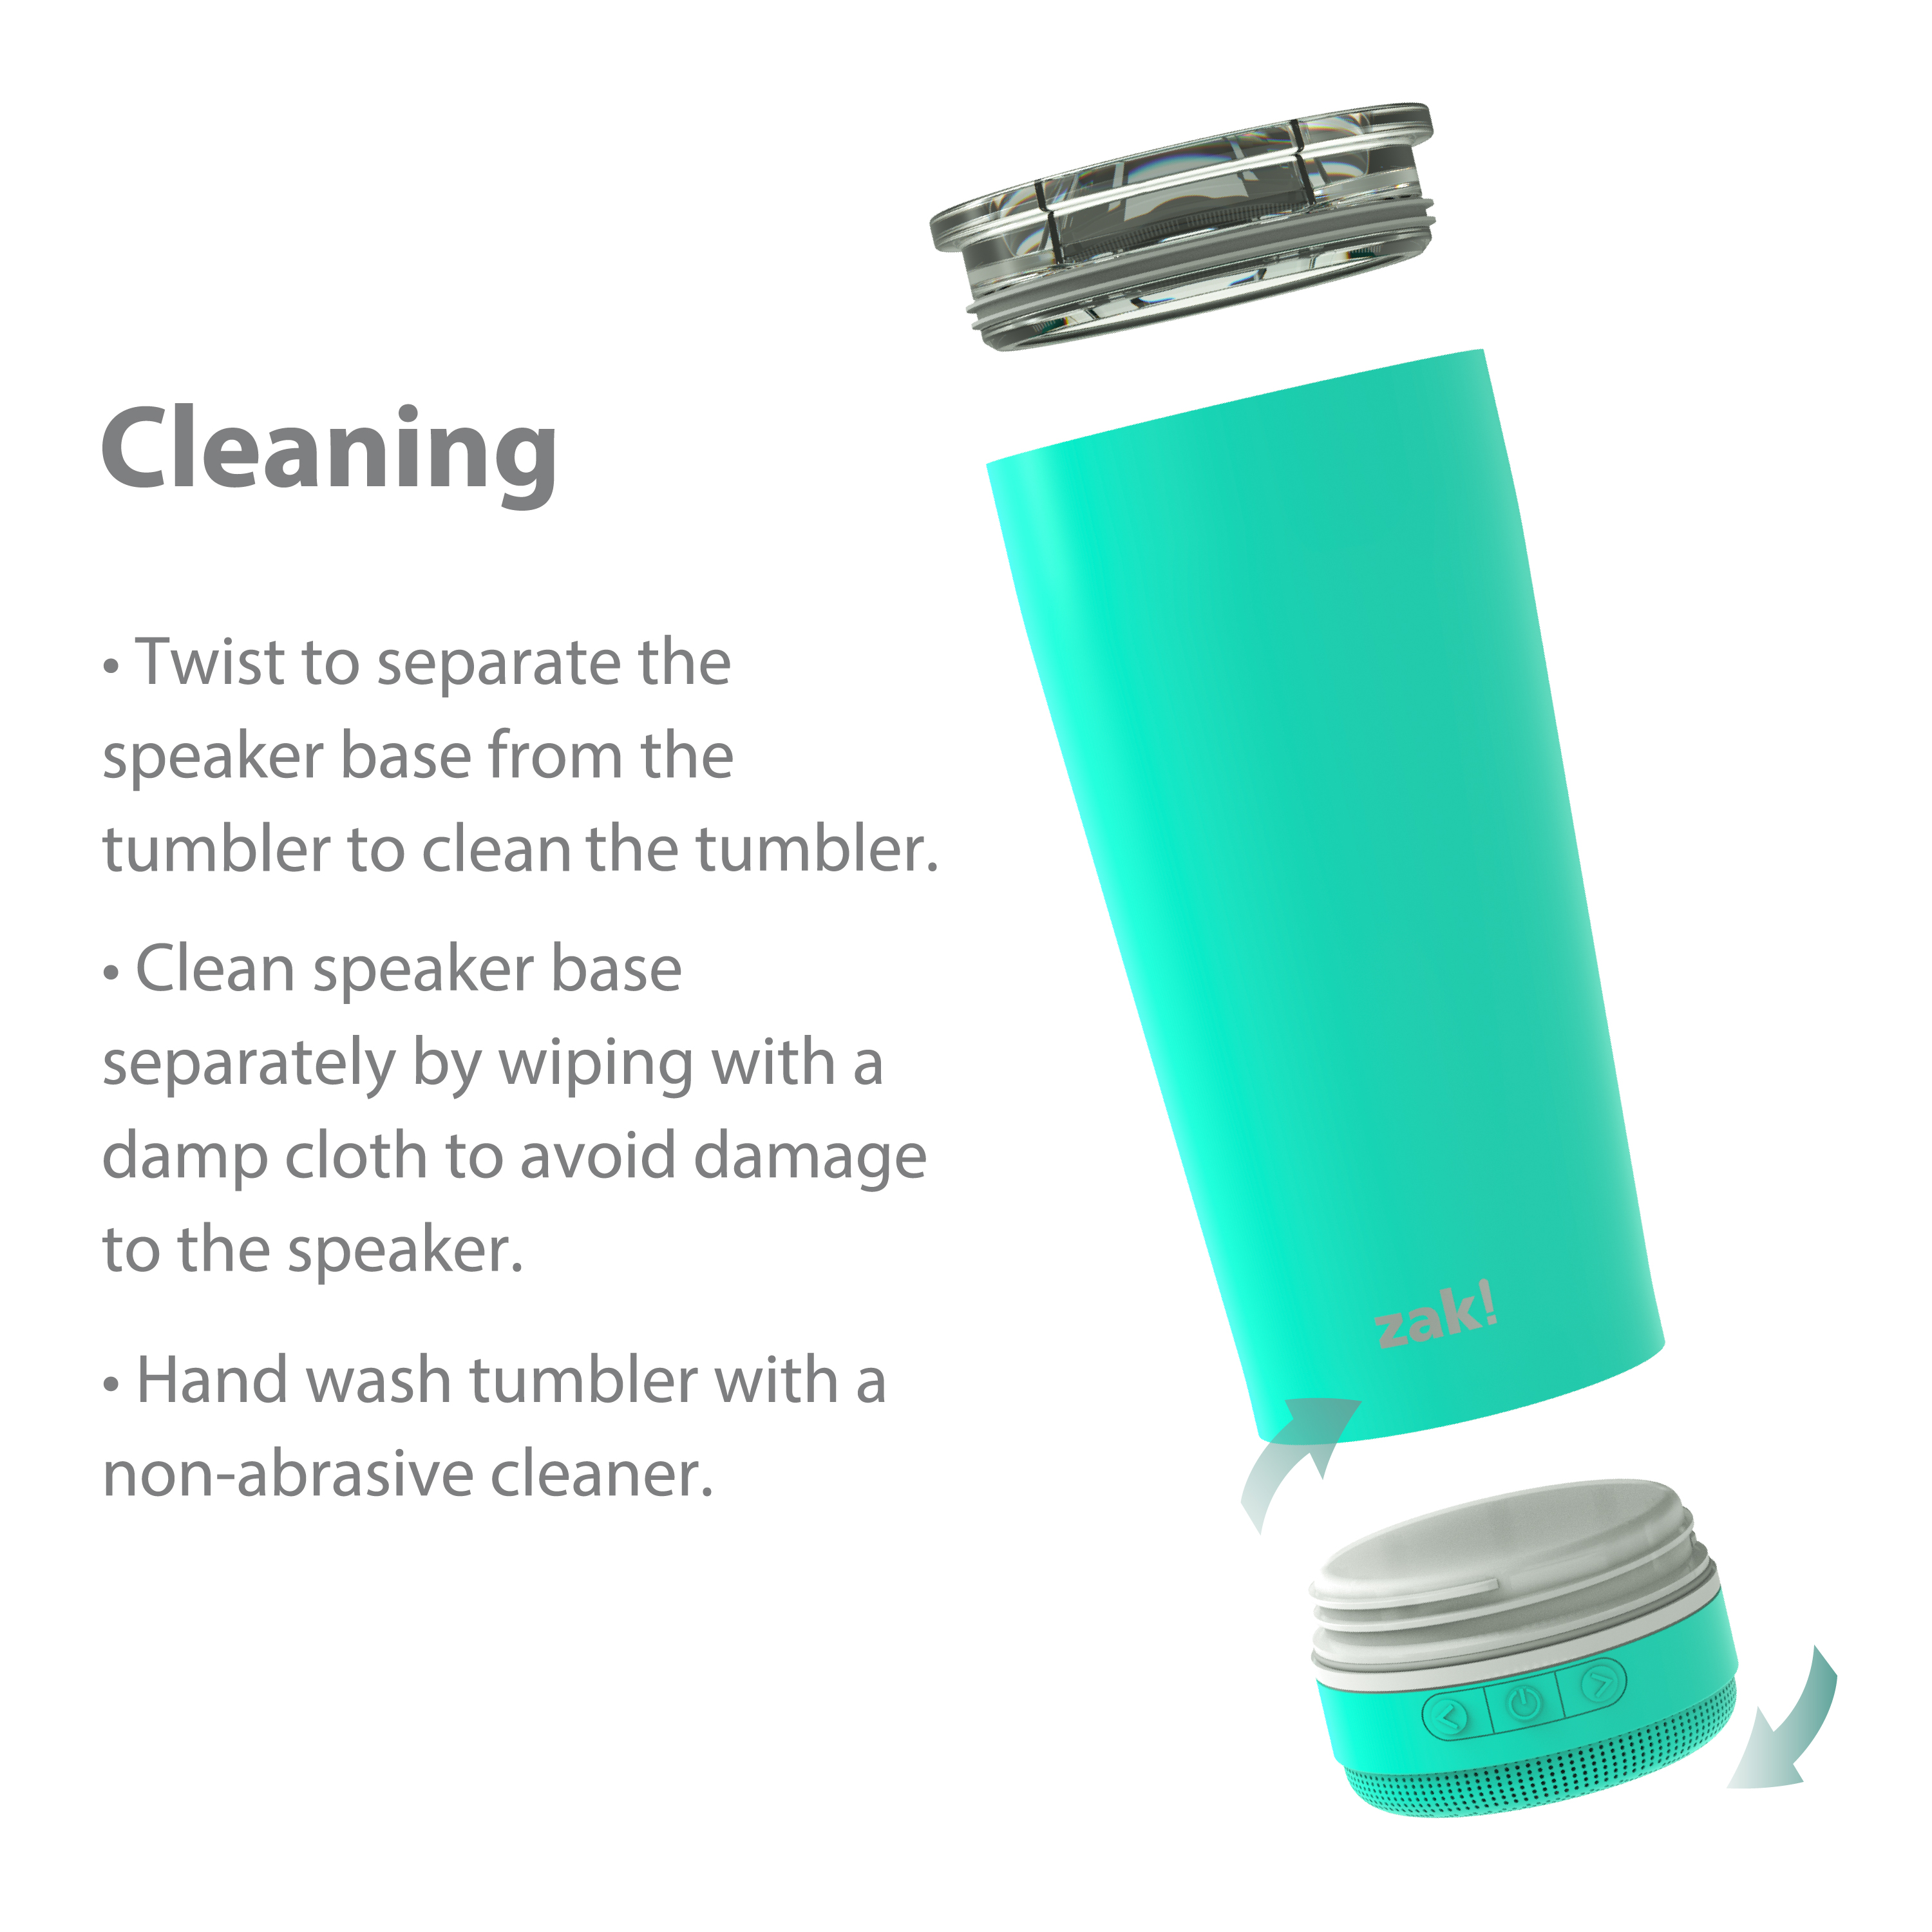 Zak Play 18 ounce Stainless Steel Tumbler with Bluetooth Speaker, Teal slideshow image 7